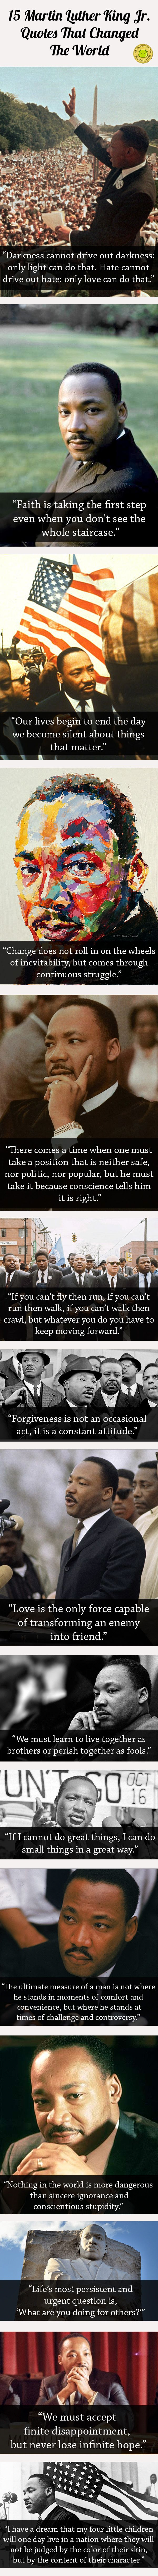 15 Martin Luther King Jr. Quotes That Changed The World…